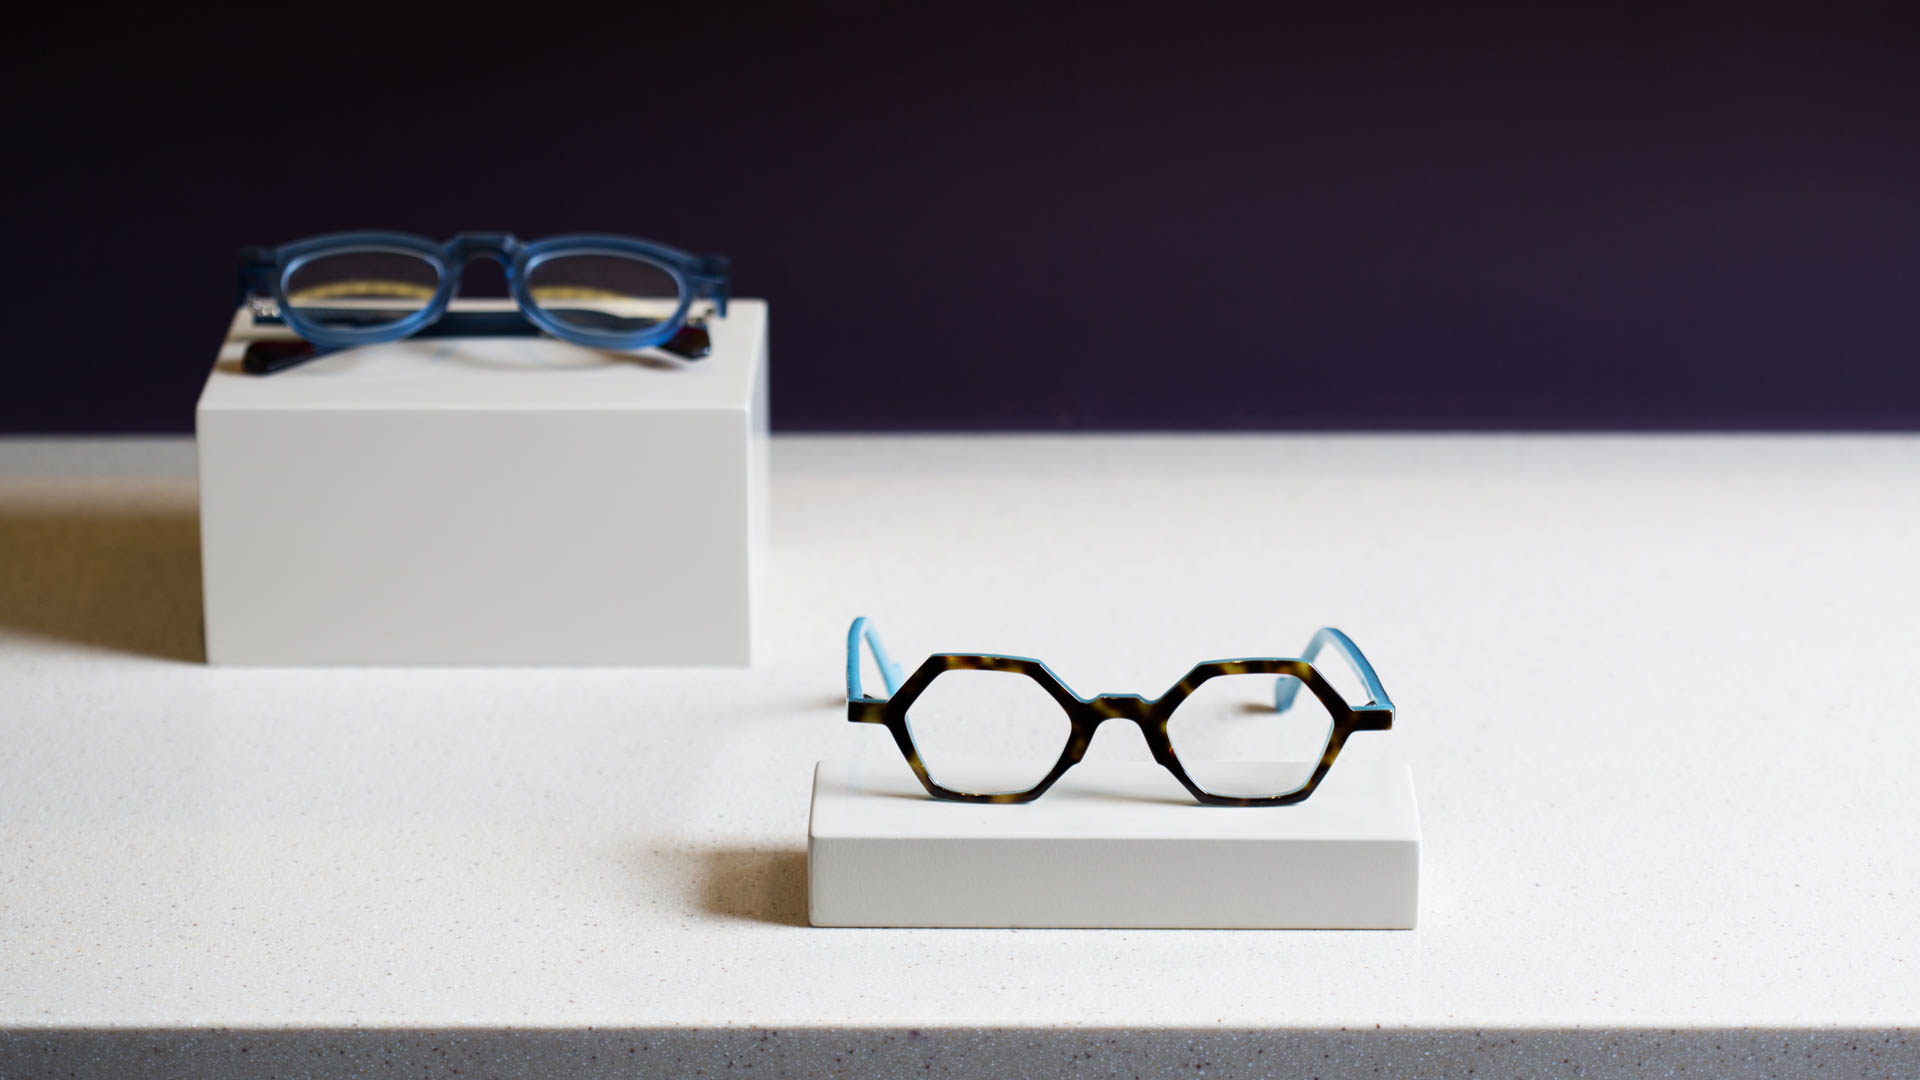 Let your eyewear give you a new look in 2017